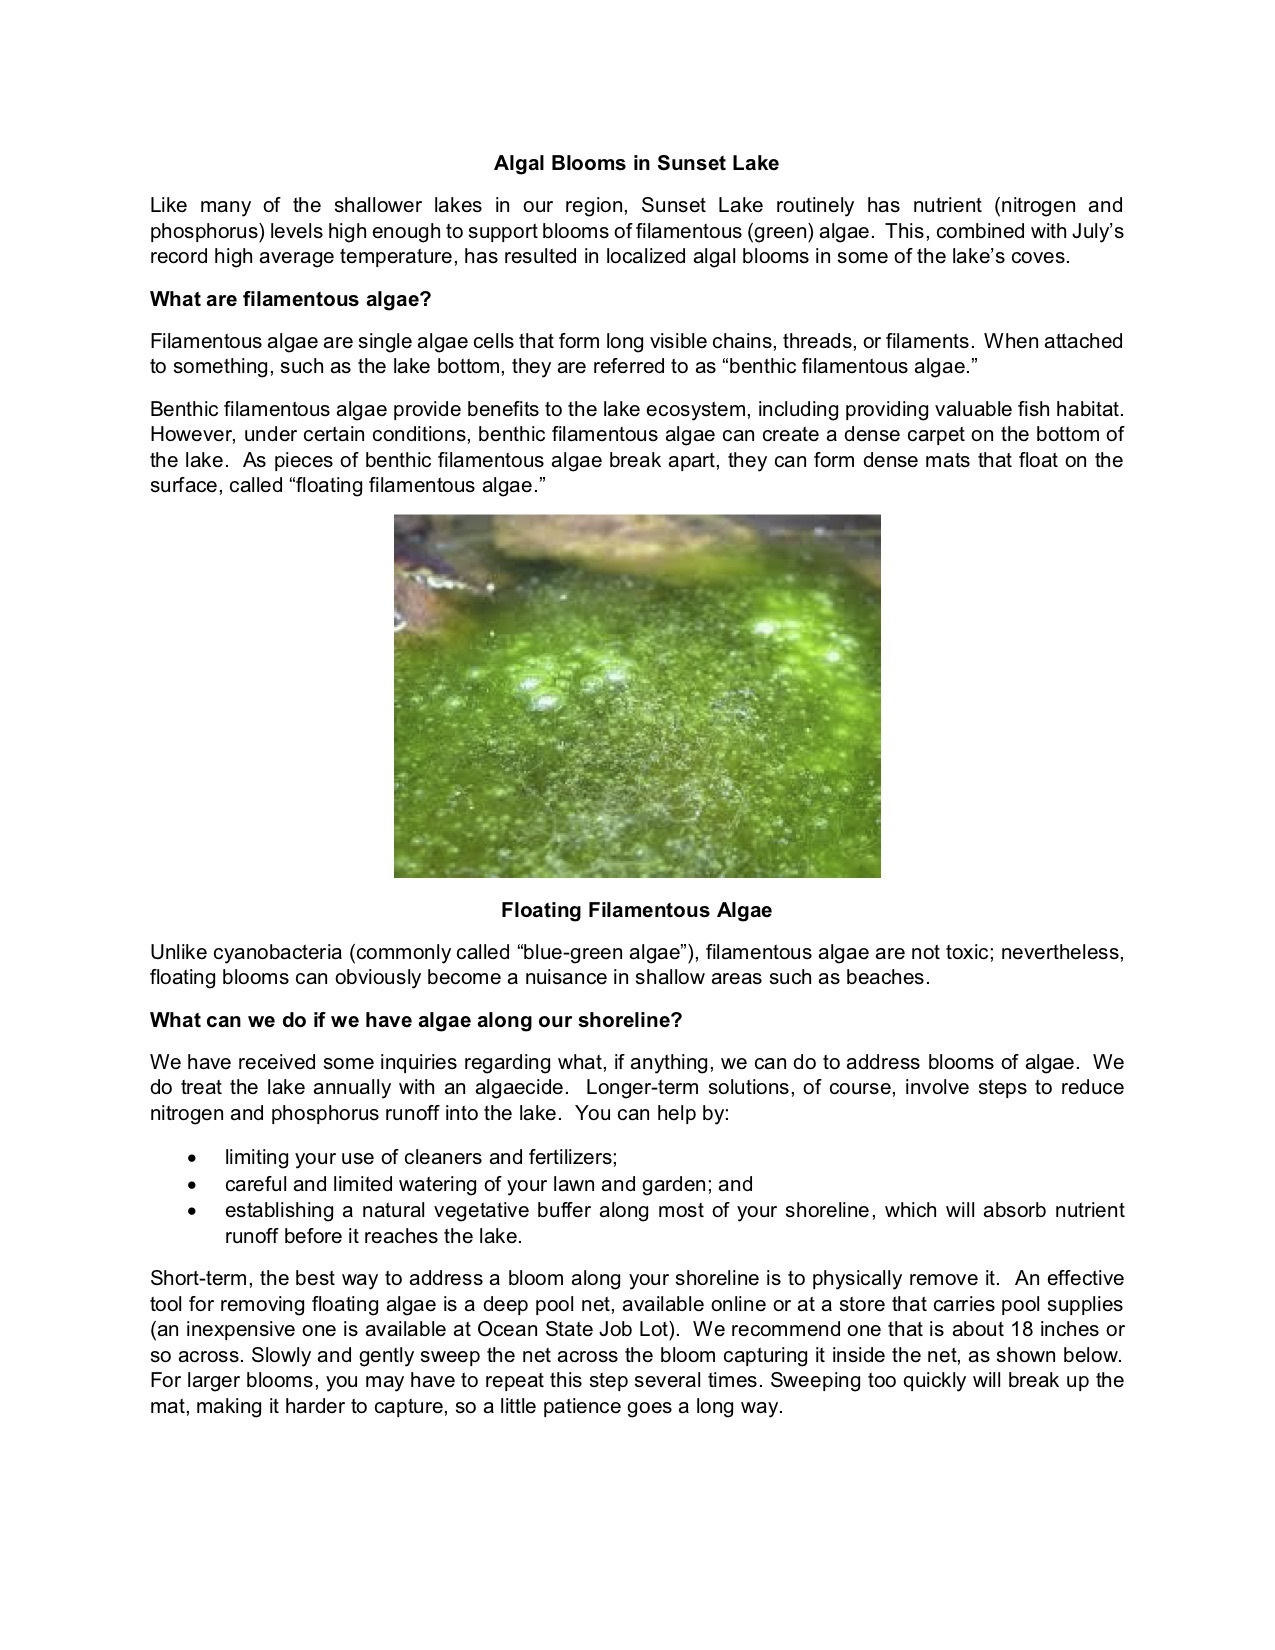 Algal Blooms in Sunset Lake 20190821 page 1.jpg